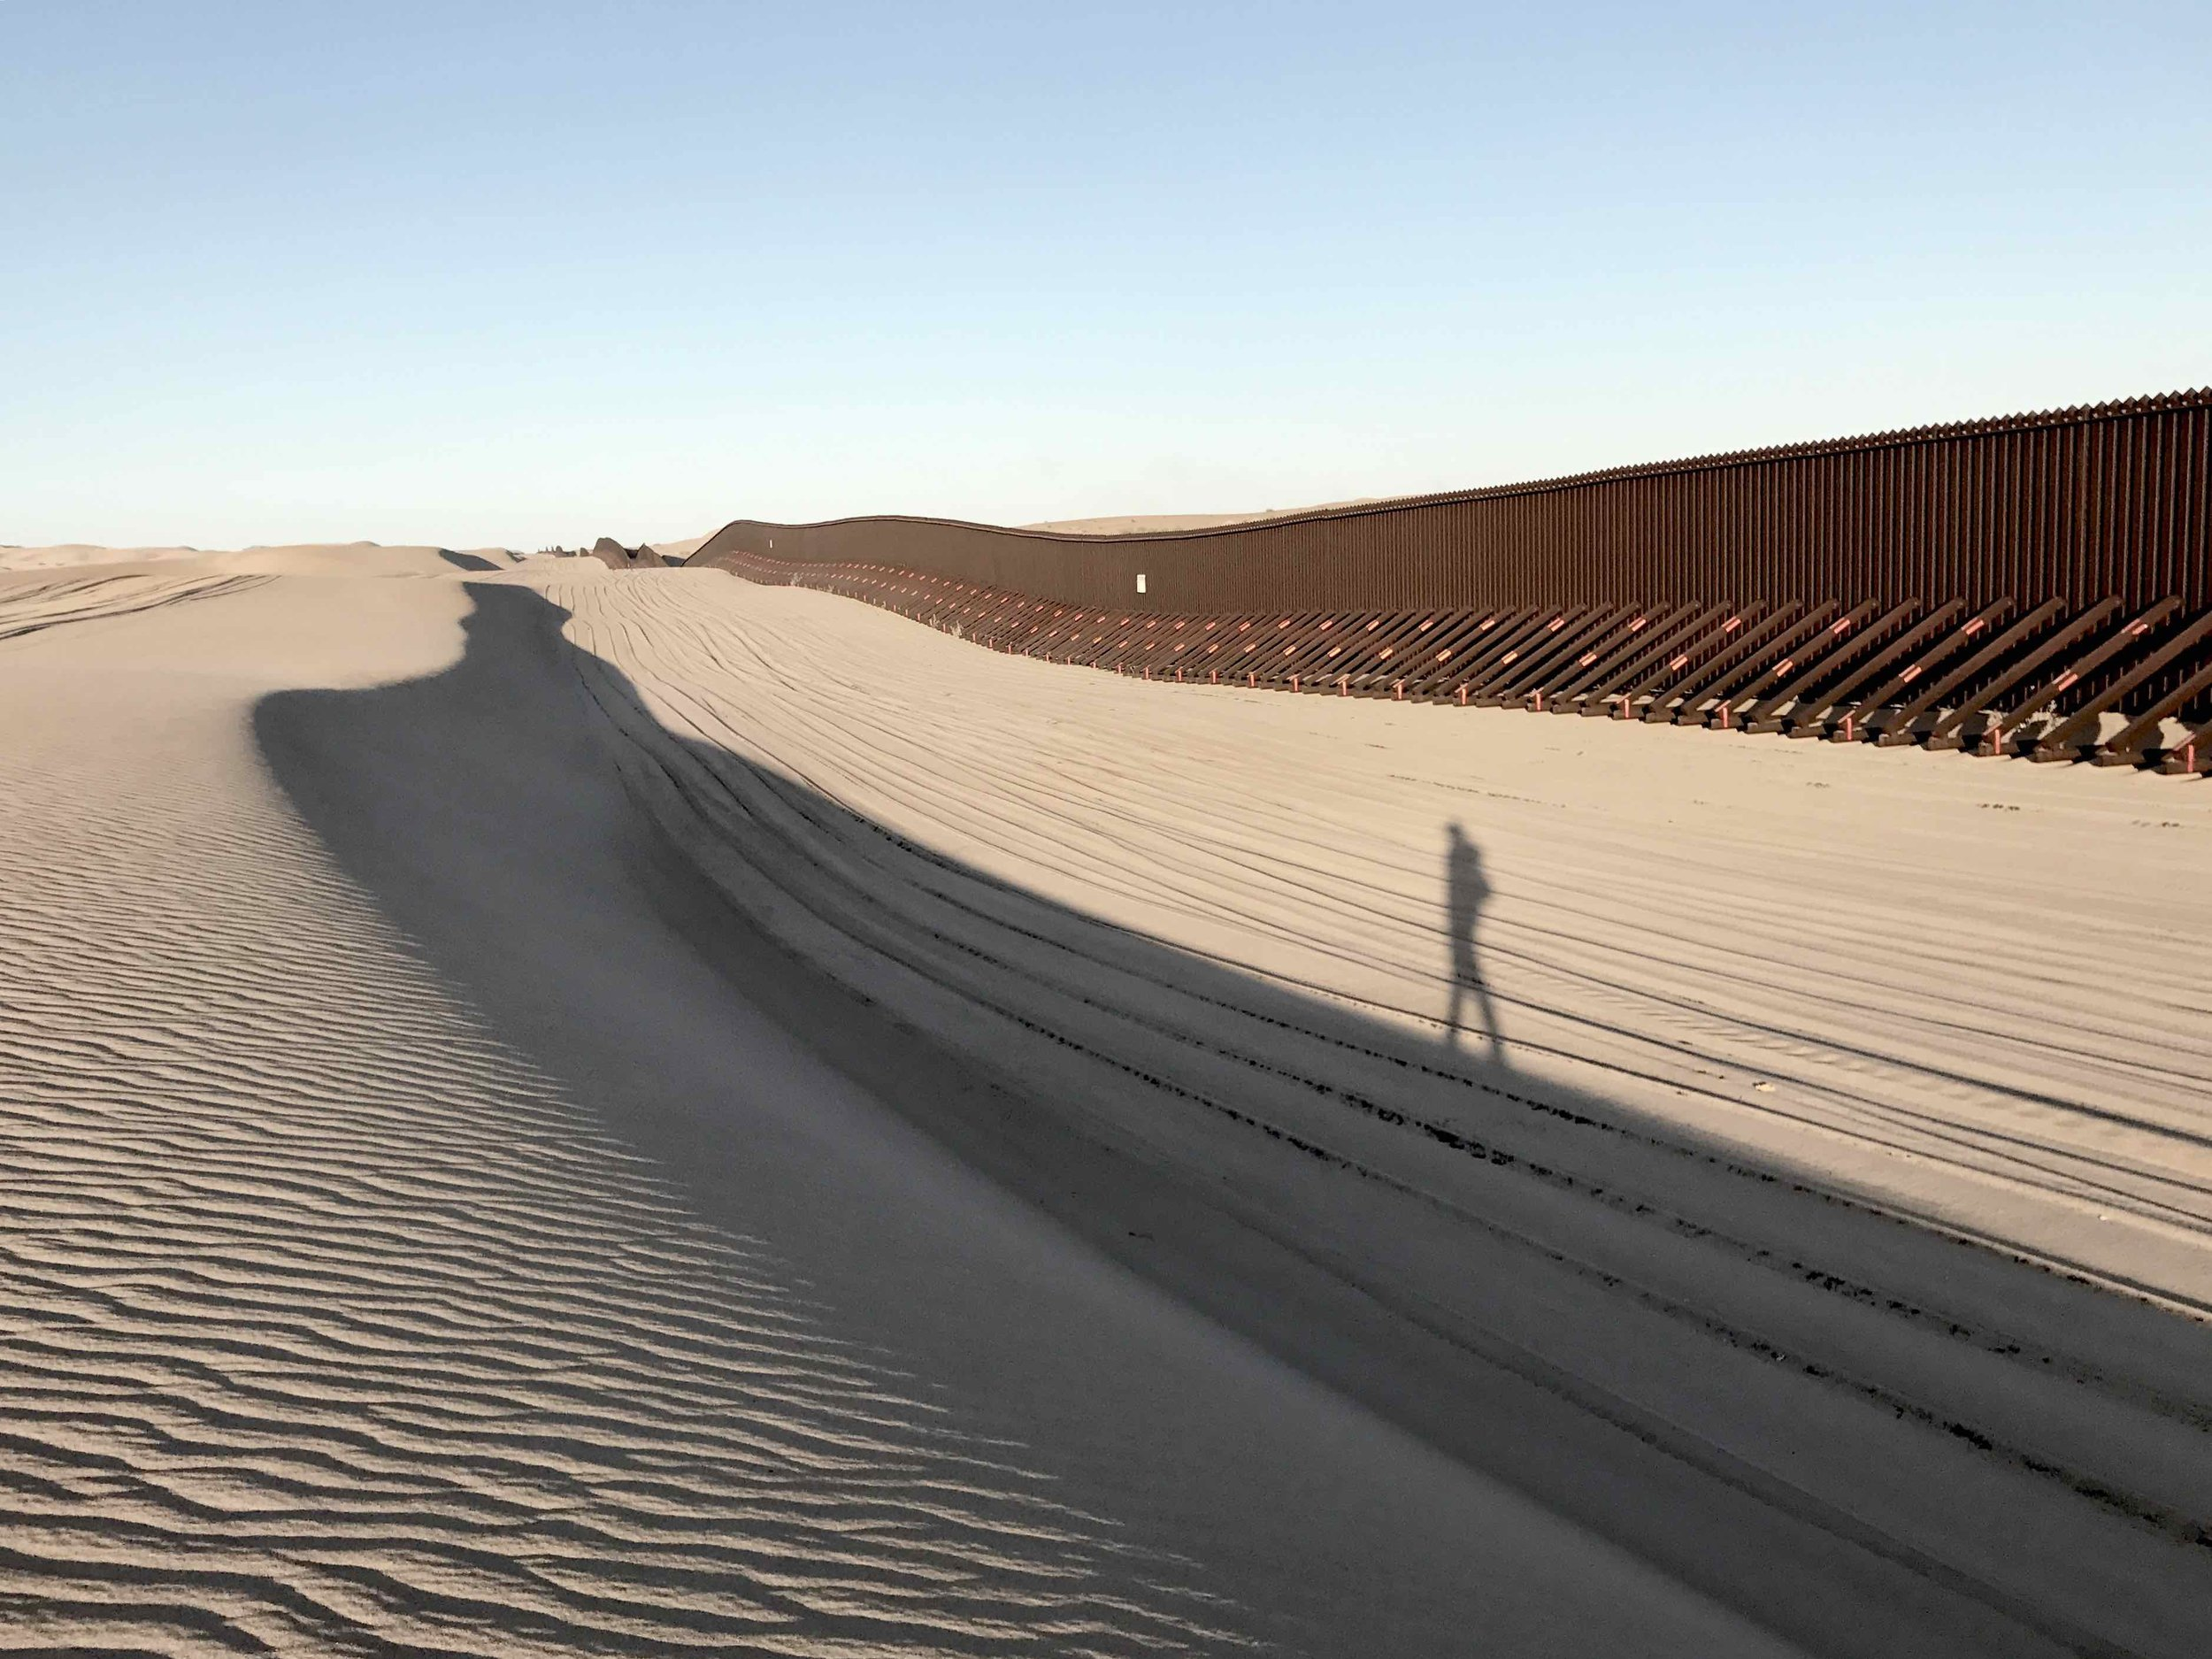 Photographing the US/Mexico border wall at the Algadones Sand Dunes, California